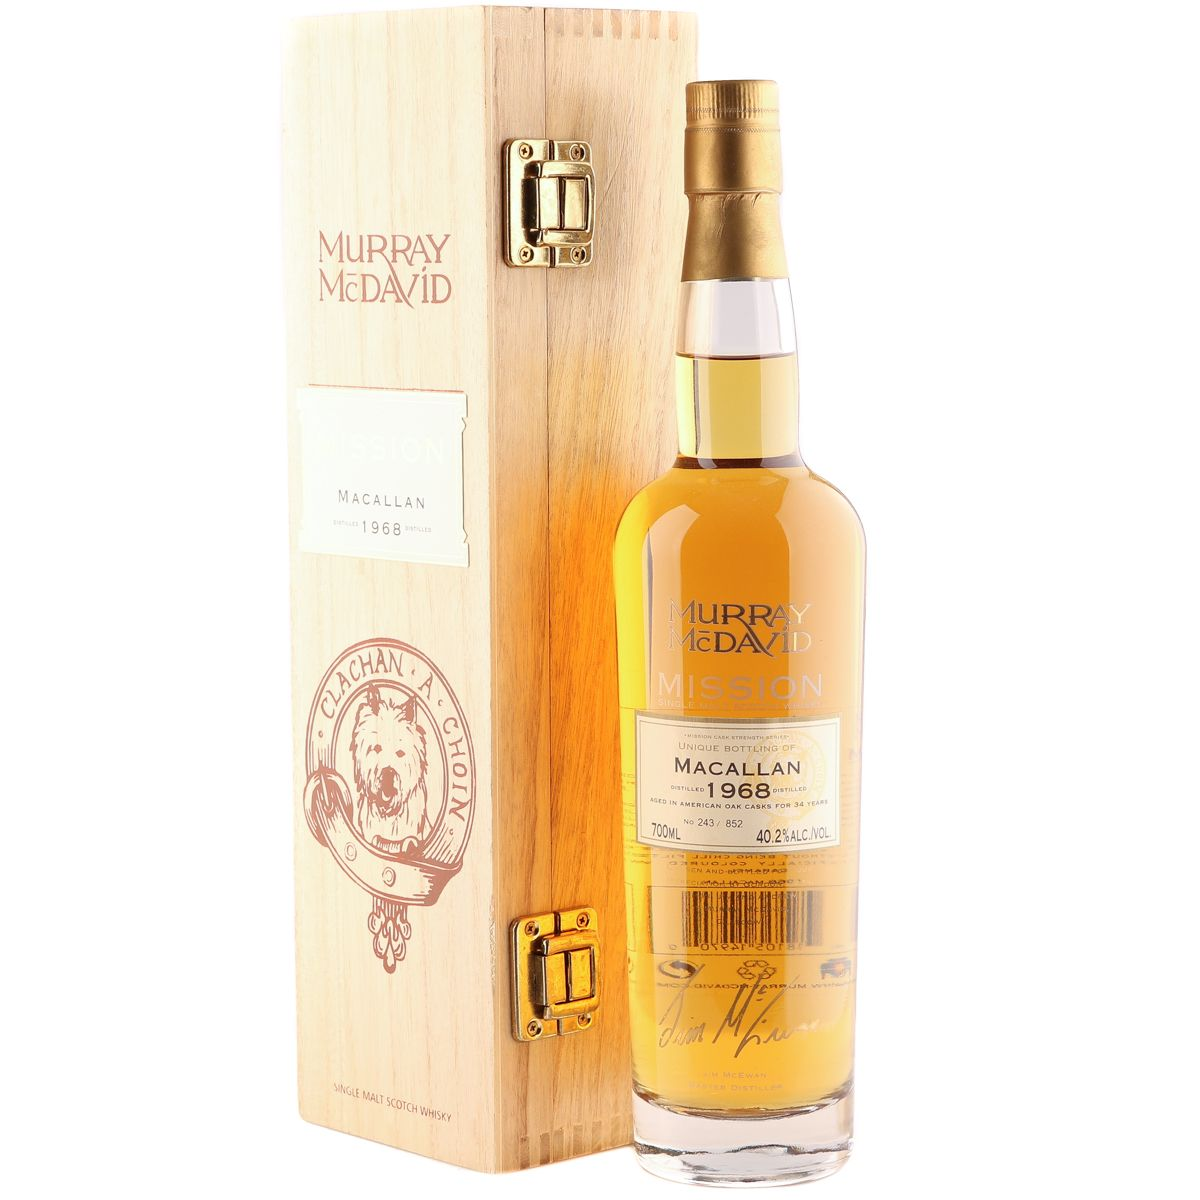 Macallan 1968 34 Year Old, Murray McDavid Mission | The Whisky Vault